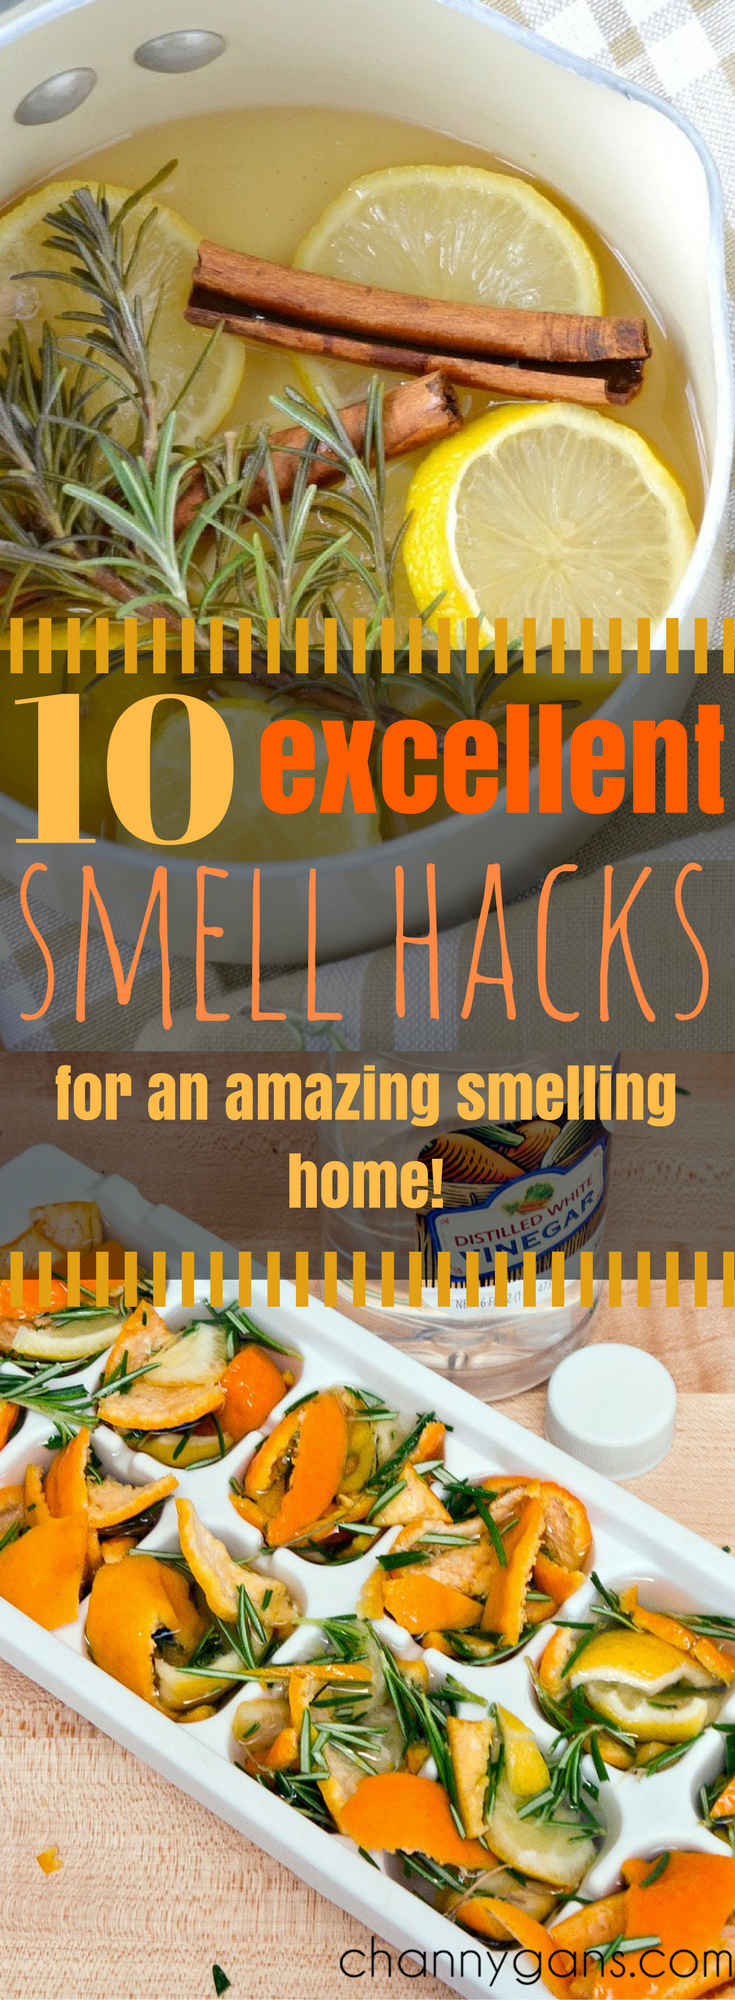 10 Excellent Smell Hacks To Make Your Home Smell Amazing -4460